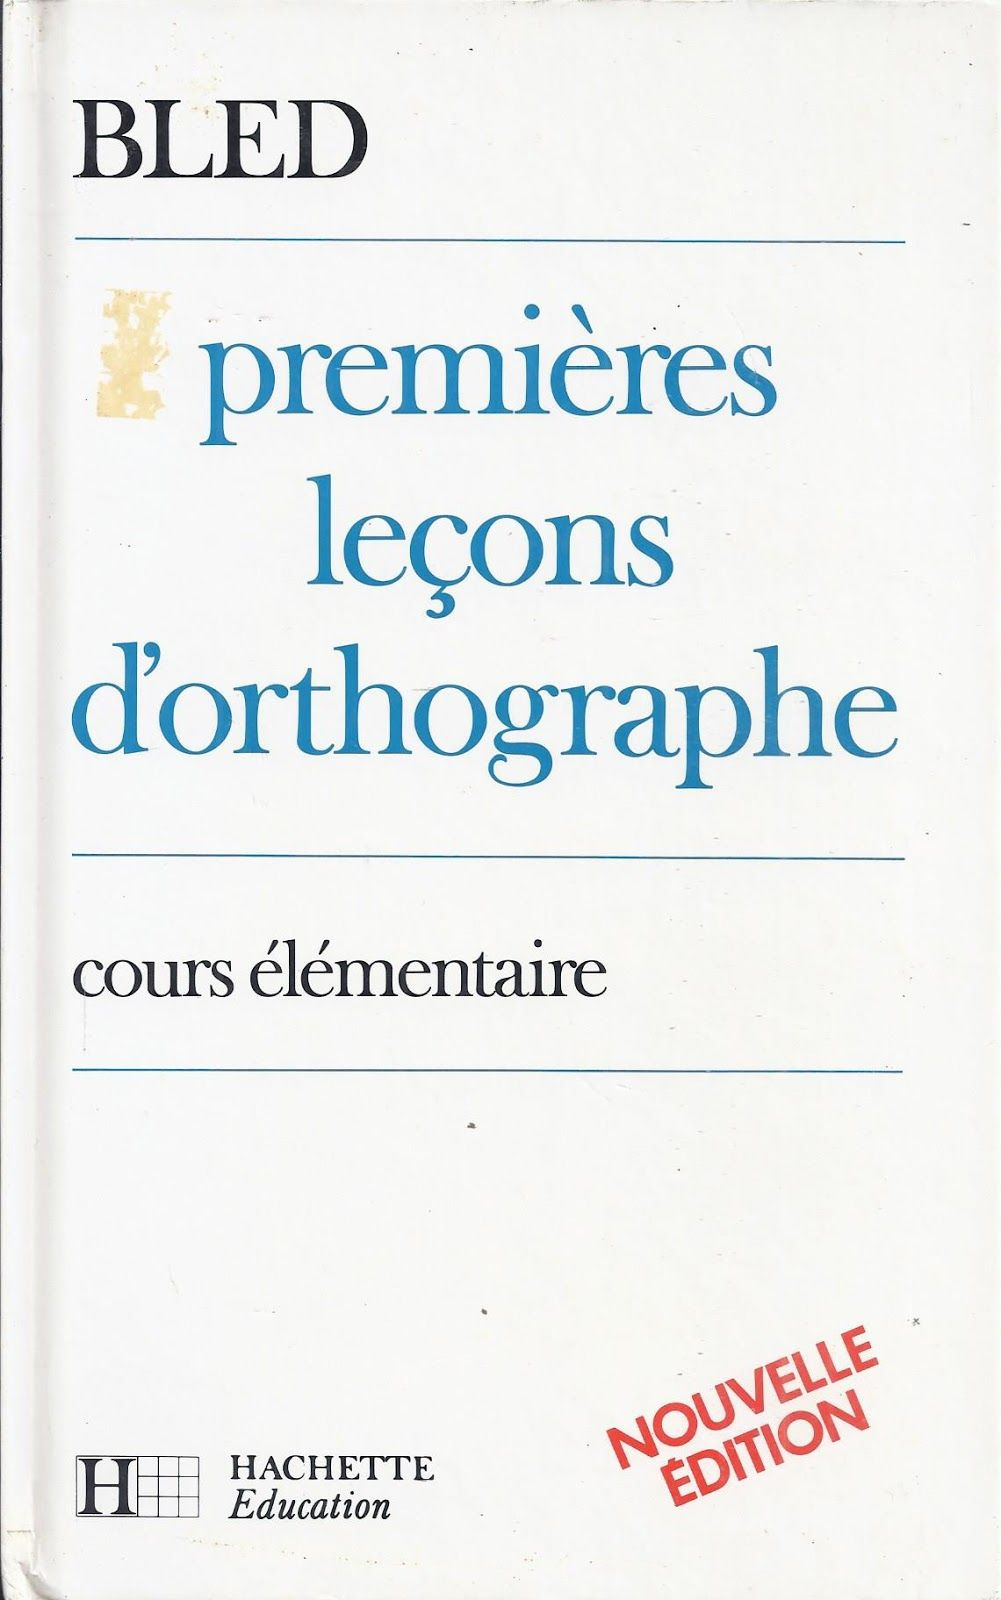 Bled Premieres Lecons D Orthographe Ce 1985 Orthographe